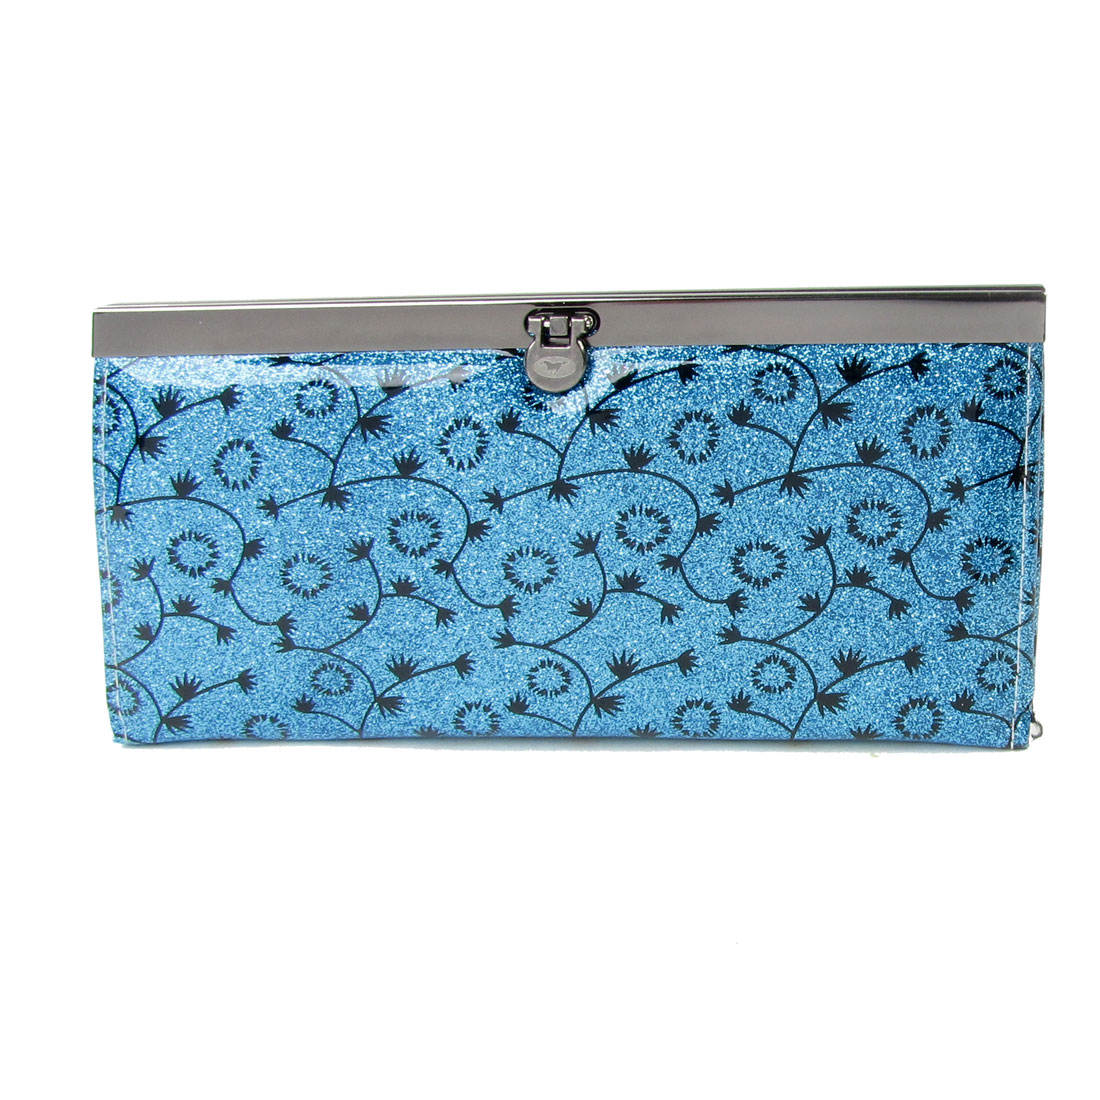 Lady Black Flower Print Flip Lock Powder Decor Wallet Purse Holder Blue